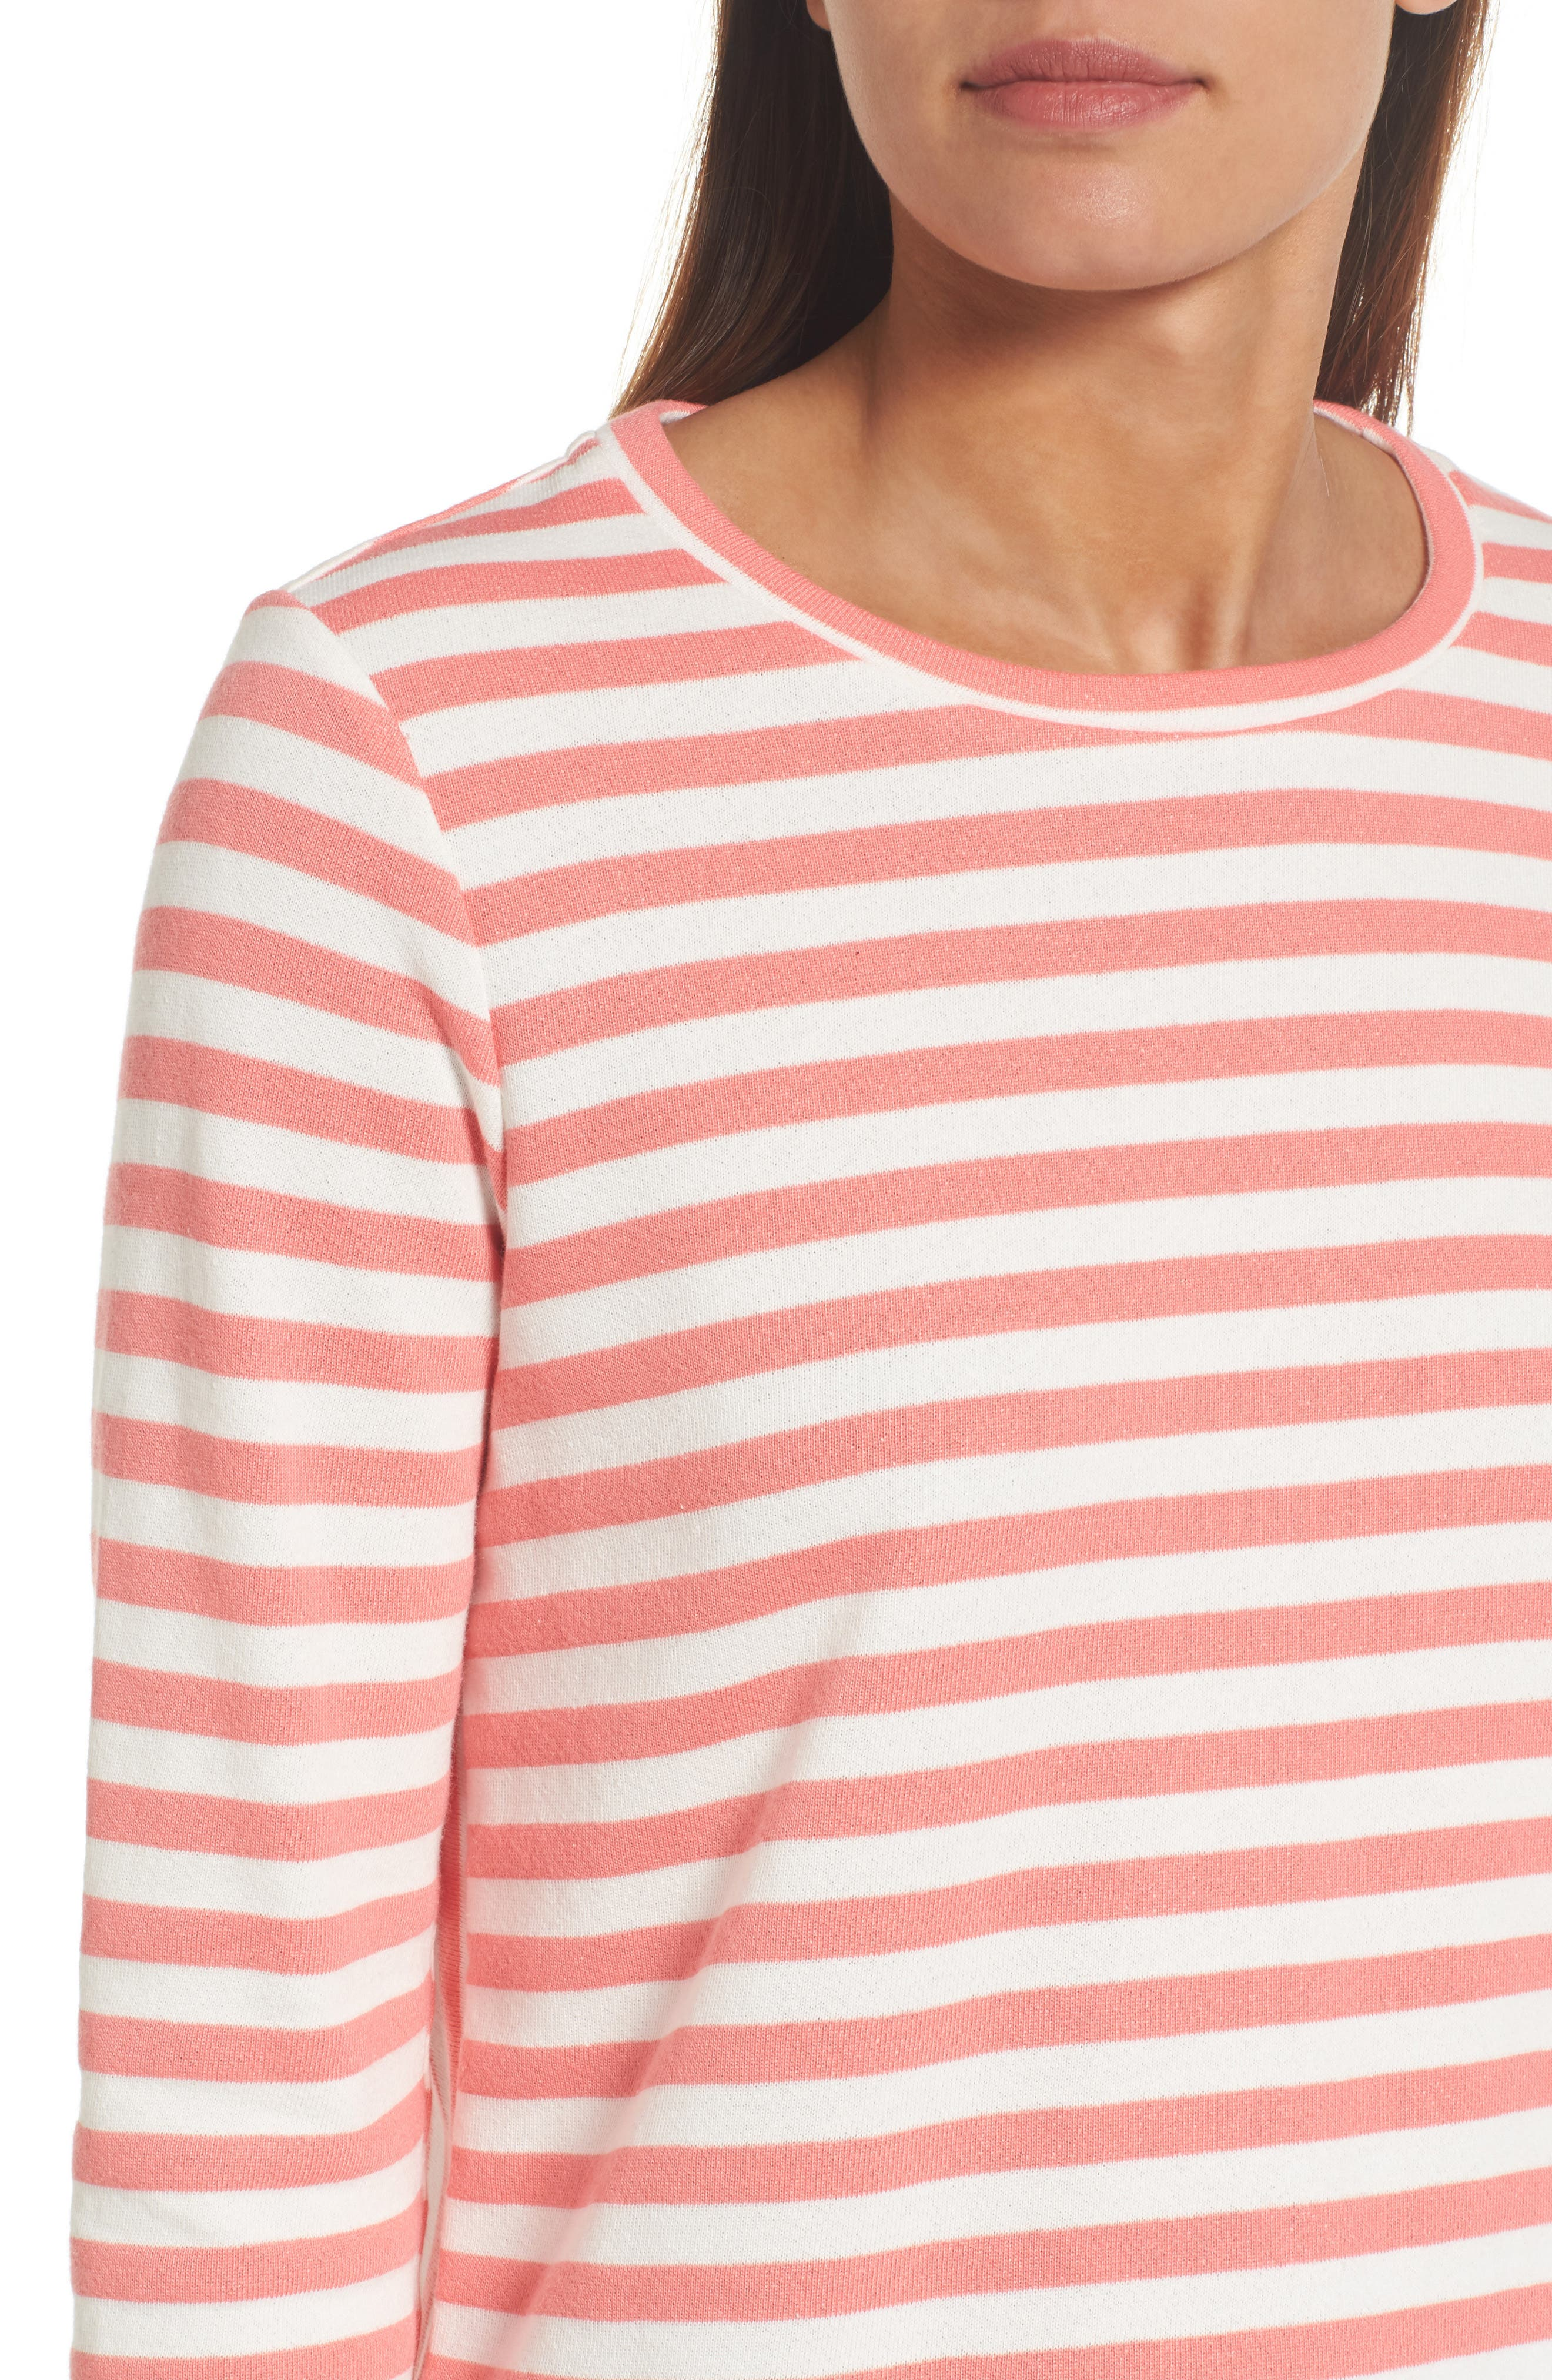 Halogen High/Low Cross Back Sweatshirt,                             Alternate thumbnail 4, color,                             Coral Sugar- White Stripe